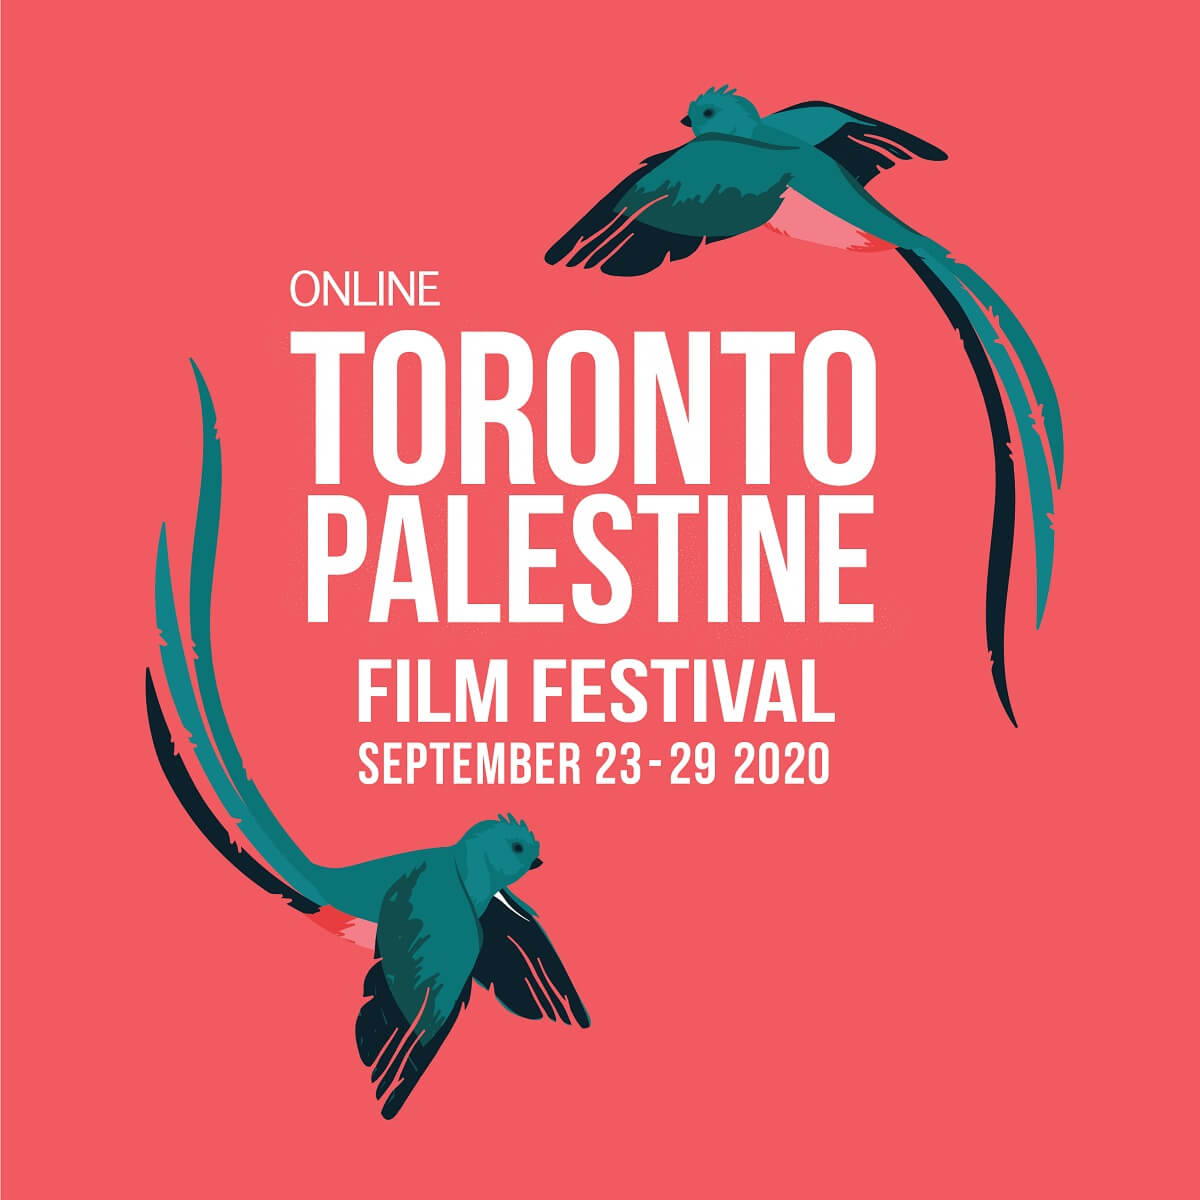 Toronto Palestine Film Festival Shorts Collection: Resisting Borders